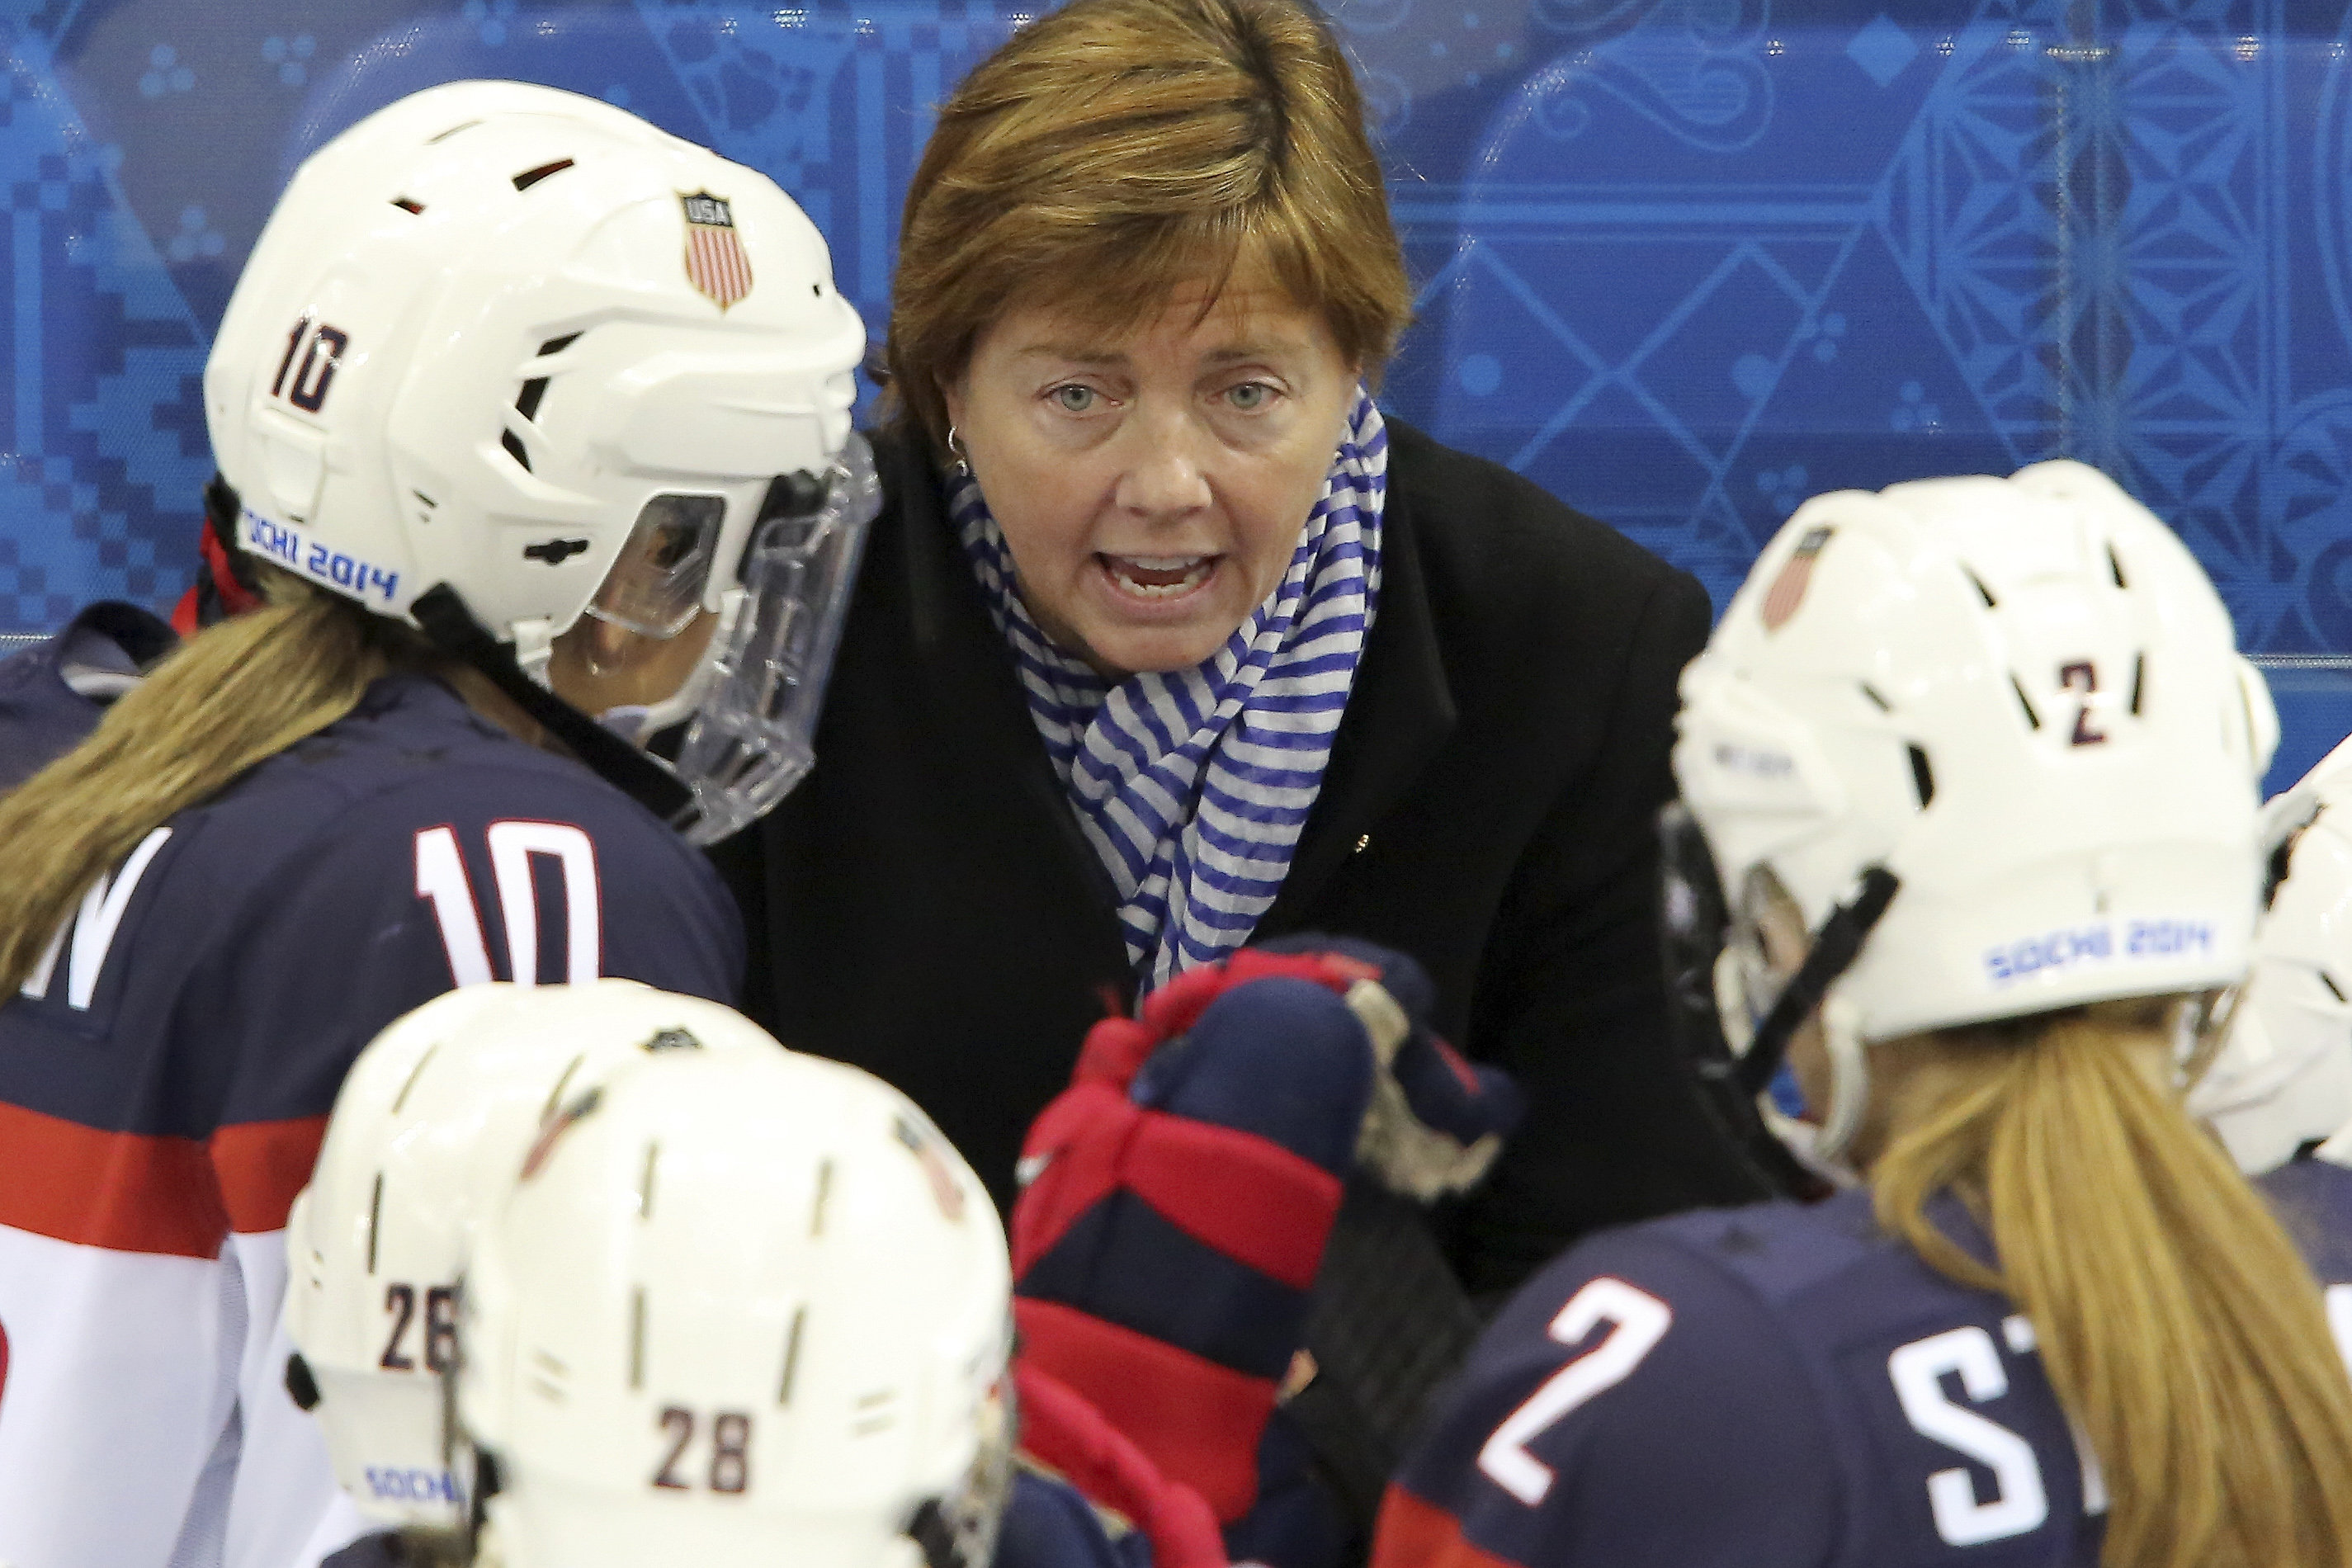 USA head coach Katey Stone talks to the team during a break in the action at the 2014 Winter Olympics women's ice hockey game between Canada and the United States at Shayba Arena, Wednesday, Feb. 12, 2014, in Sochi, Russia. (AP Photo/J. David Ake)